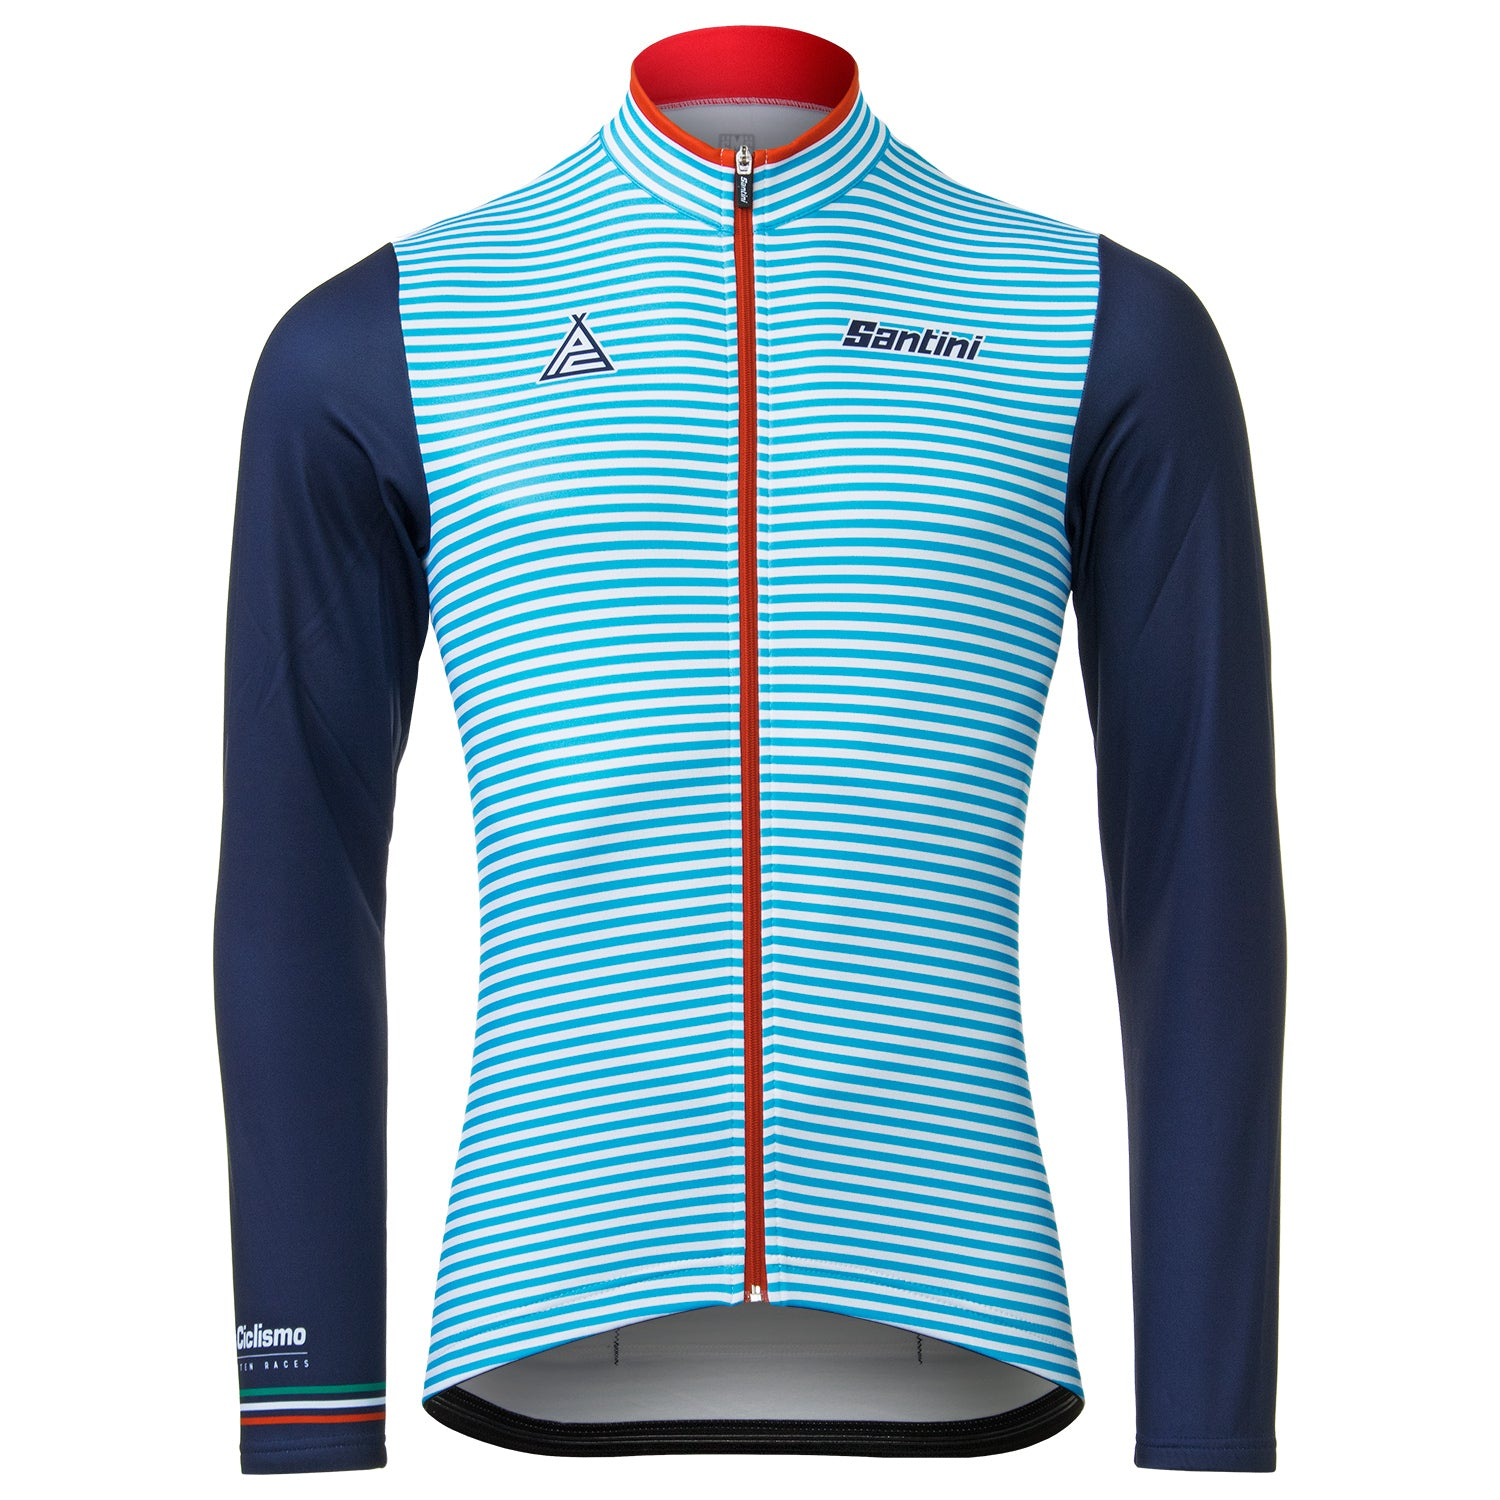 Trofeo Baracchi Race Long Sleeve Jersey